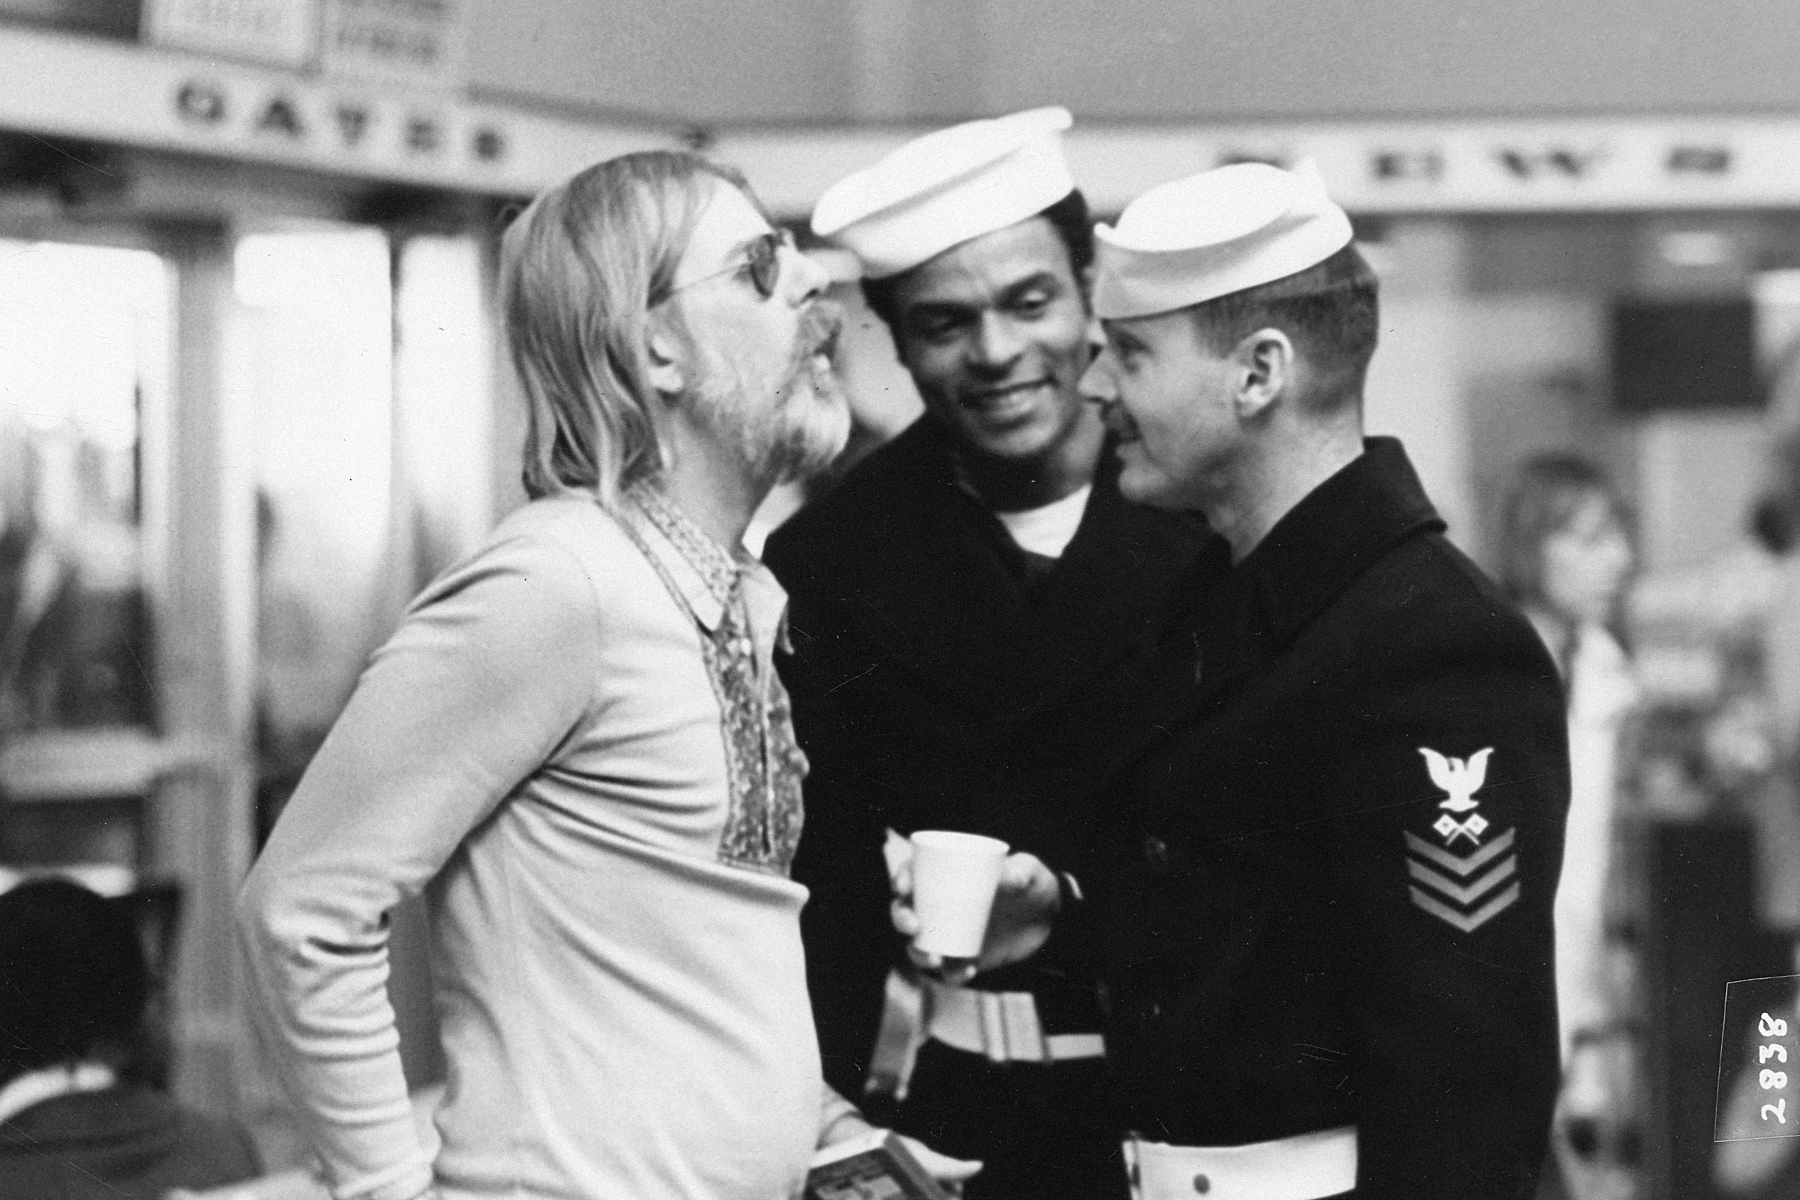 Hal Ashby directs Otis Young and Jack Nicholson in The Last Detail